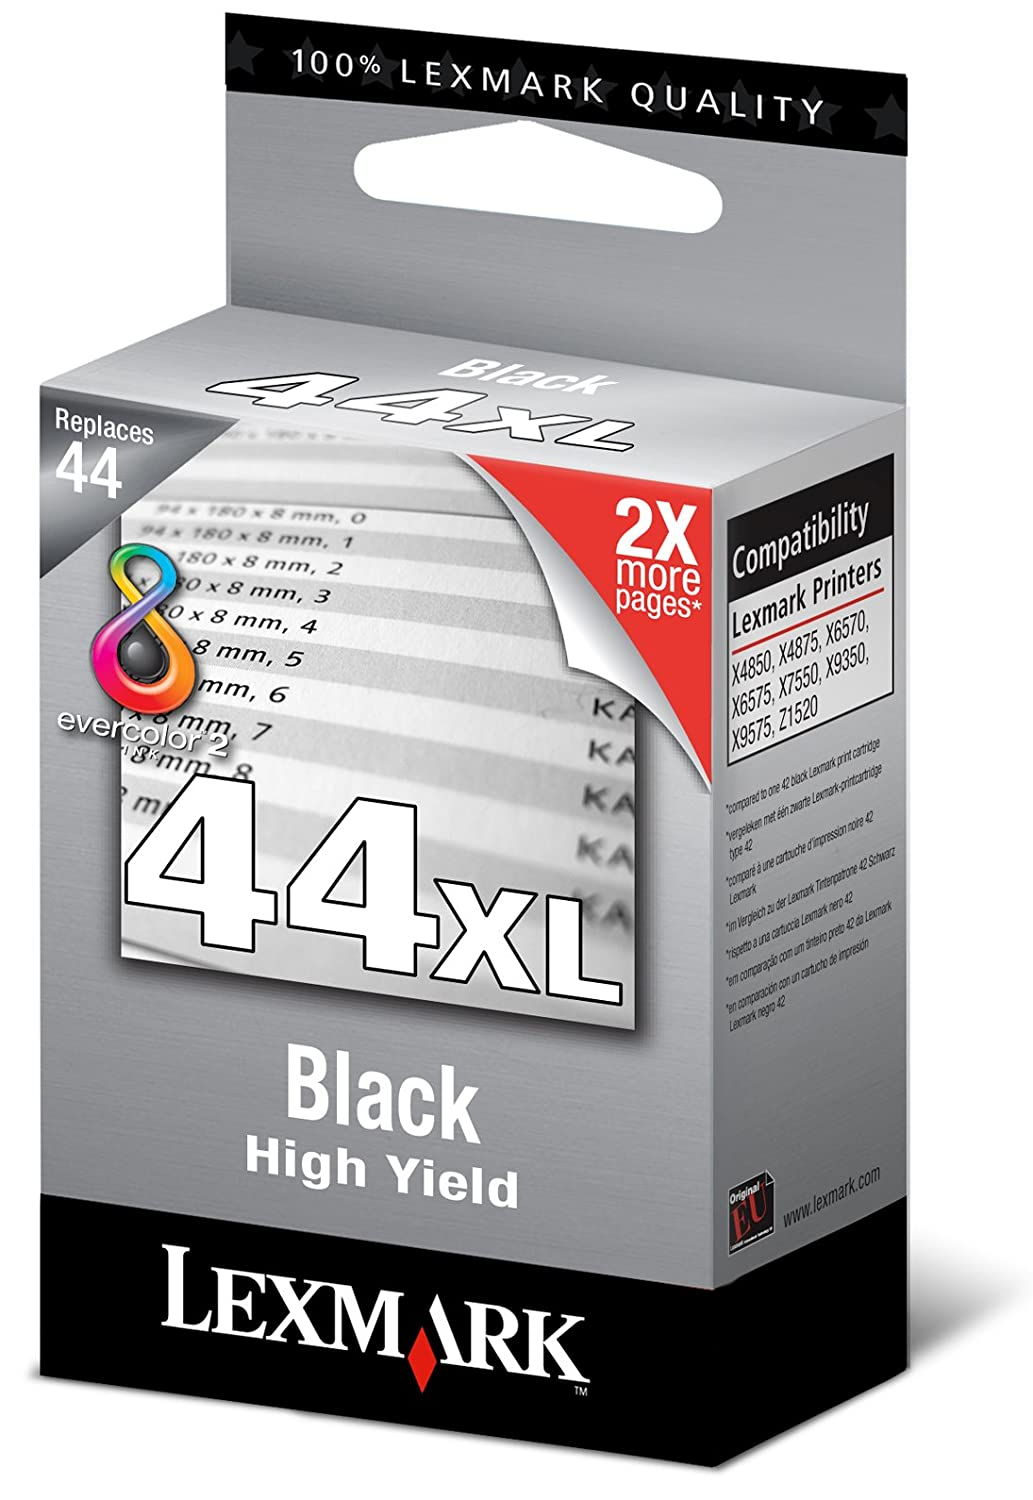 LEXMARK X6750 DRIVERS FOR WINDOWS DOWNLOAD